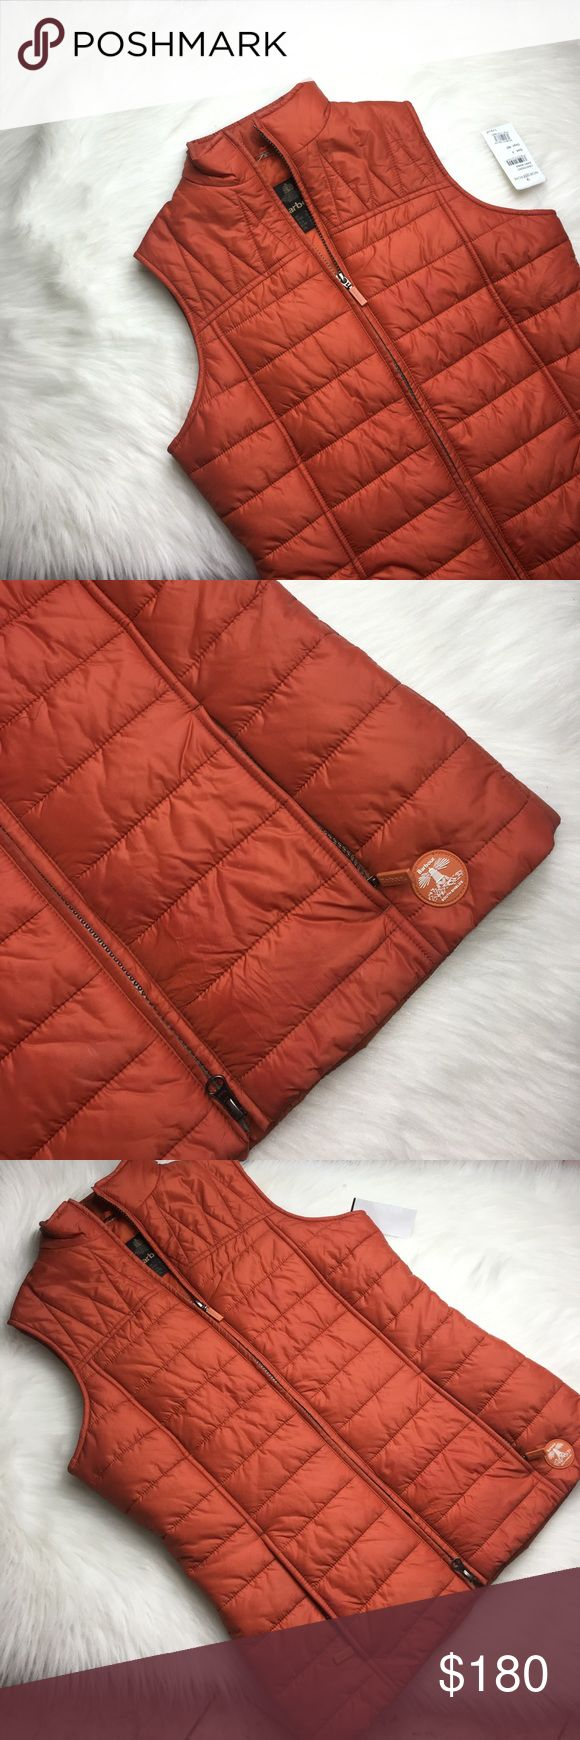 "BARBOUR BURNT ORANGE PUFFER VEST SIZE 4 Super cute and brand new!  Want to save more?  Bundle and save on shipping! Measurements:  Length: 25""  Underarms: 18.5""  Inseam:  Waist:  * smoke free home * Reasonable offers only please * All items are recorded in condition listed prior to shipping  * follow me on IG for exclusive sale offers @theposhpassport_ Barbour Jackets & Coats Vests"